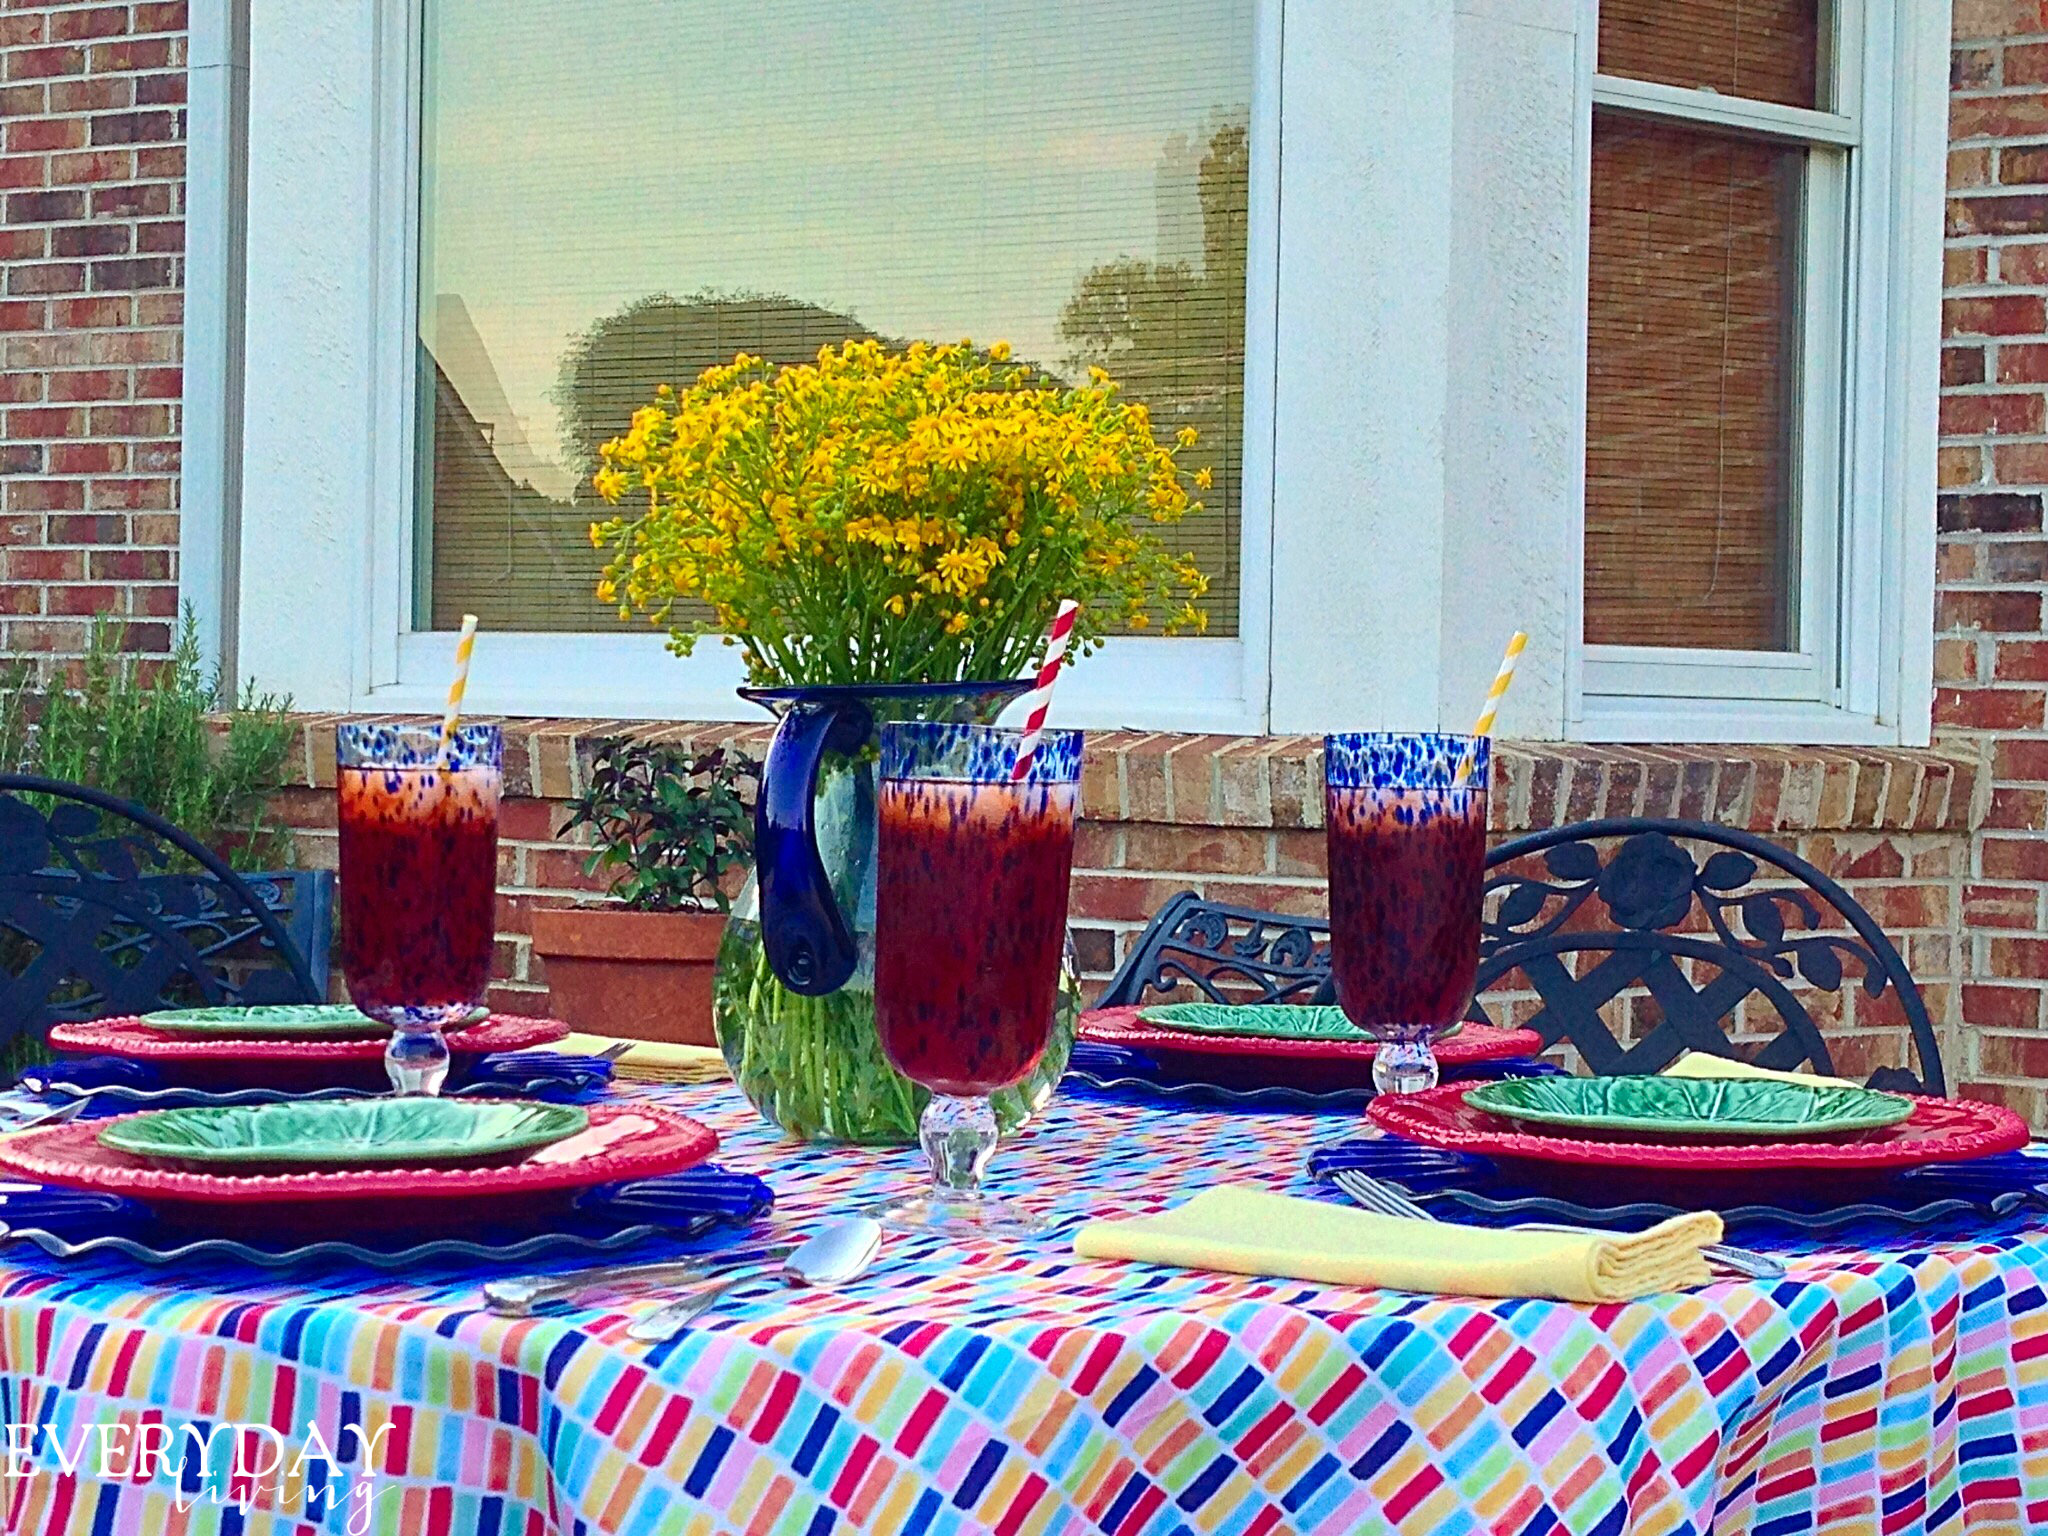 Since I Donu0027t Own Any Fiesta Ware, I Mixed An Array Of Colors For Dining  Alfresco!